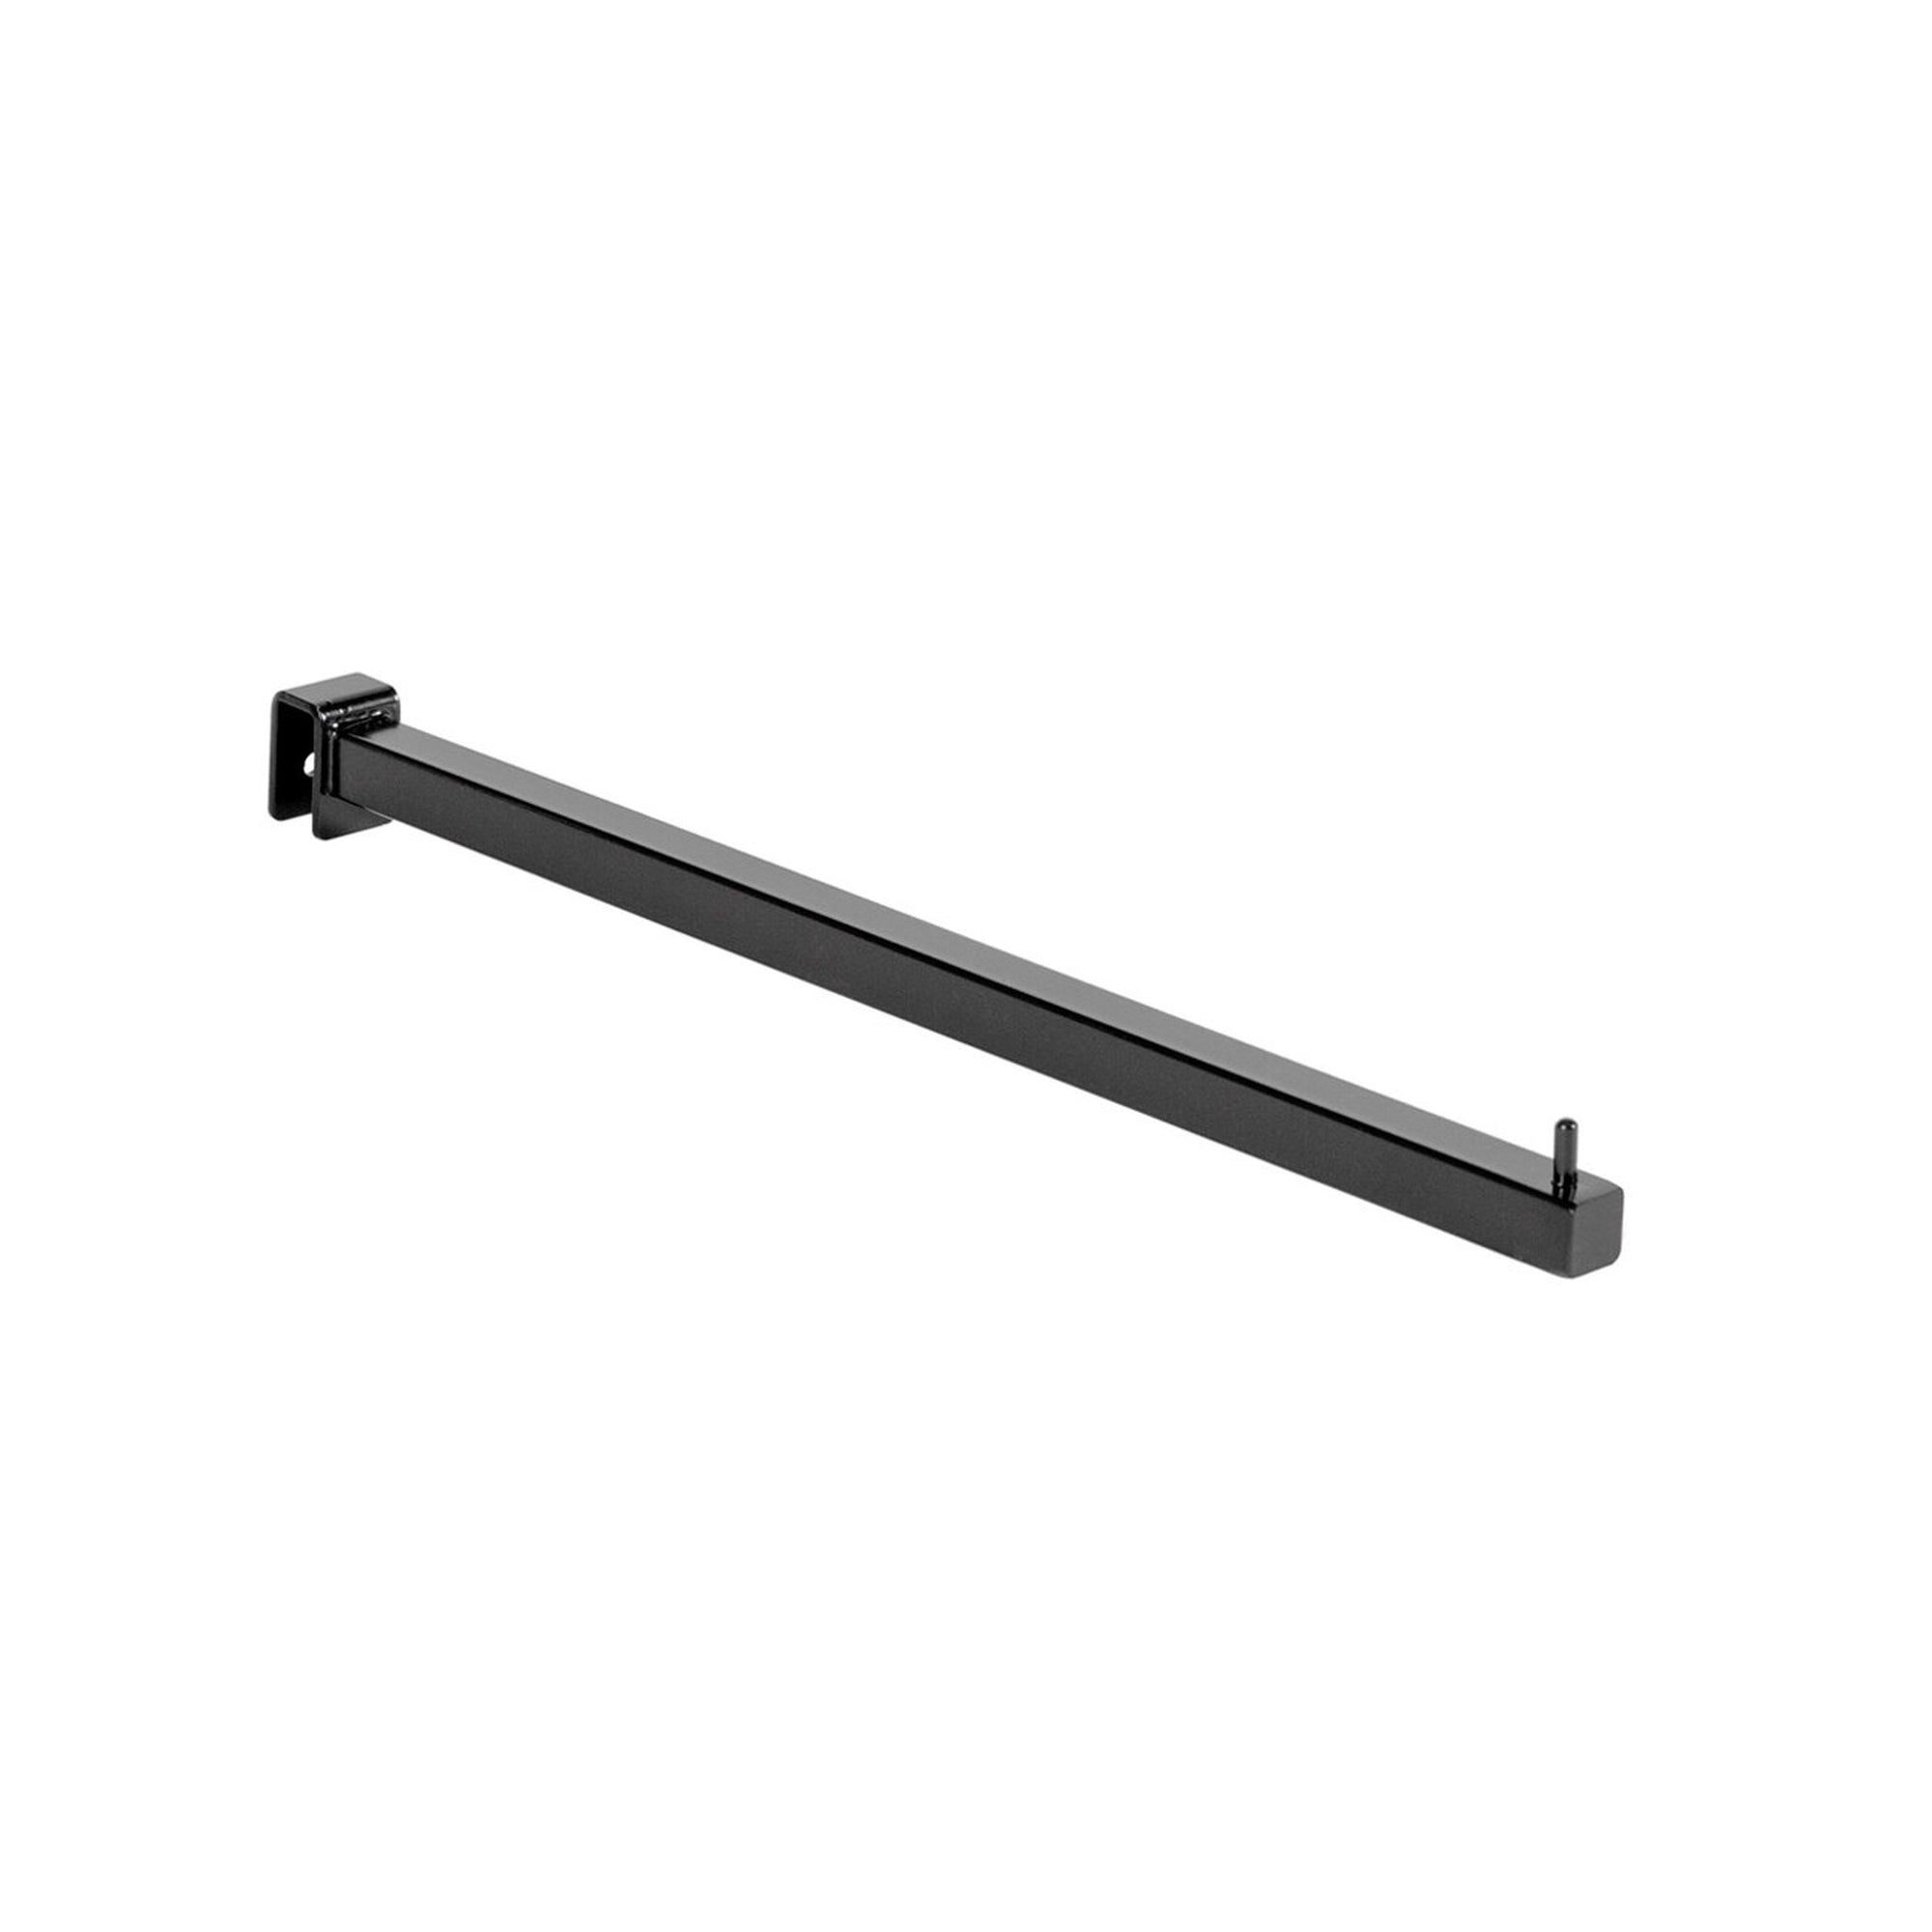 MAXe Backrail Straight Arm - 400mm D x 18mm x 18 mm section (E4840)